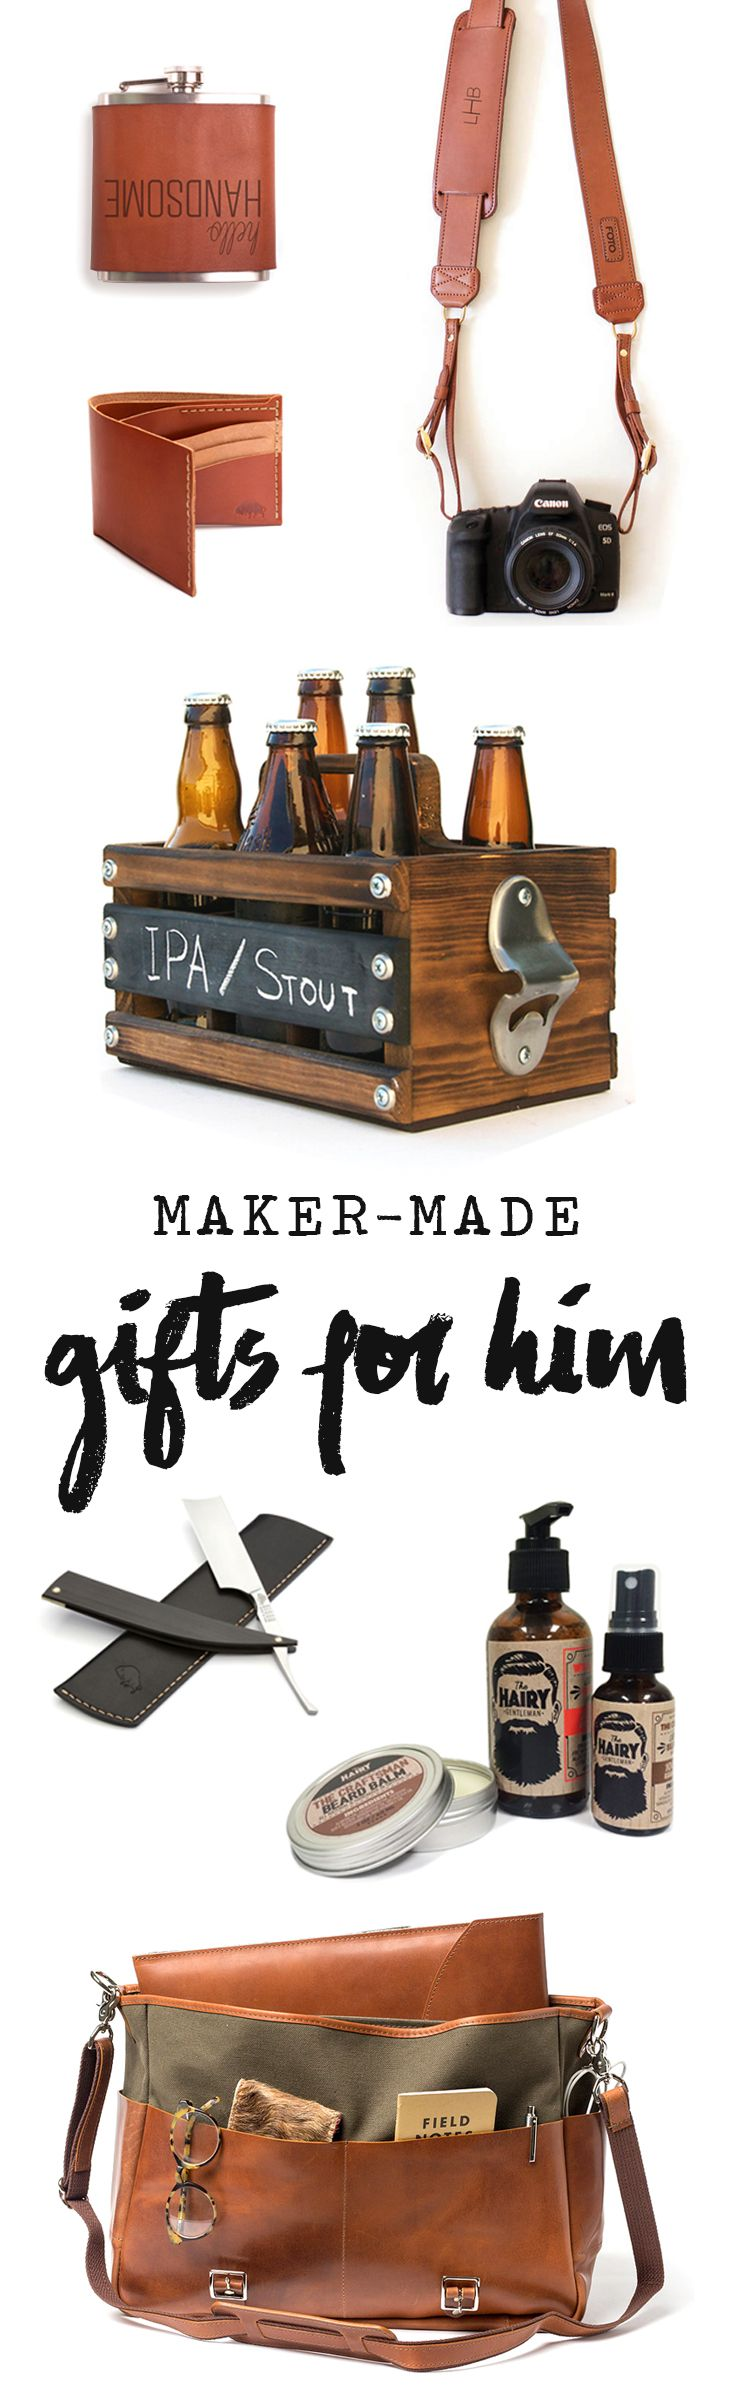 Your man deserves the best, so hook him up with some of our favorite maker-made goods. From handmade leather wallets, bags, and camera straps to beard care goods and everything the beer lover could ever want, these unique gifts will show the man in your life just how special you think he is.